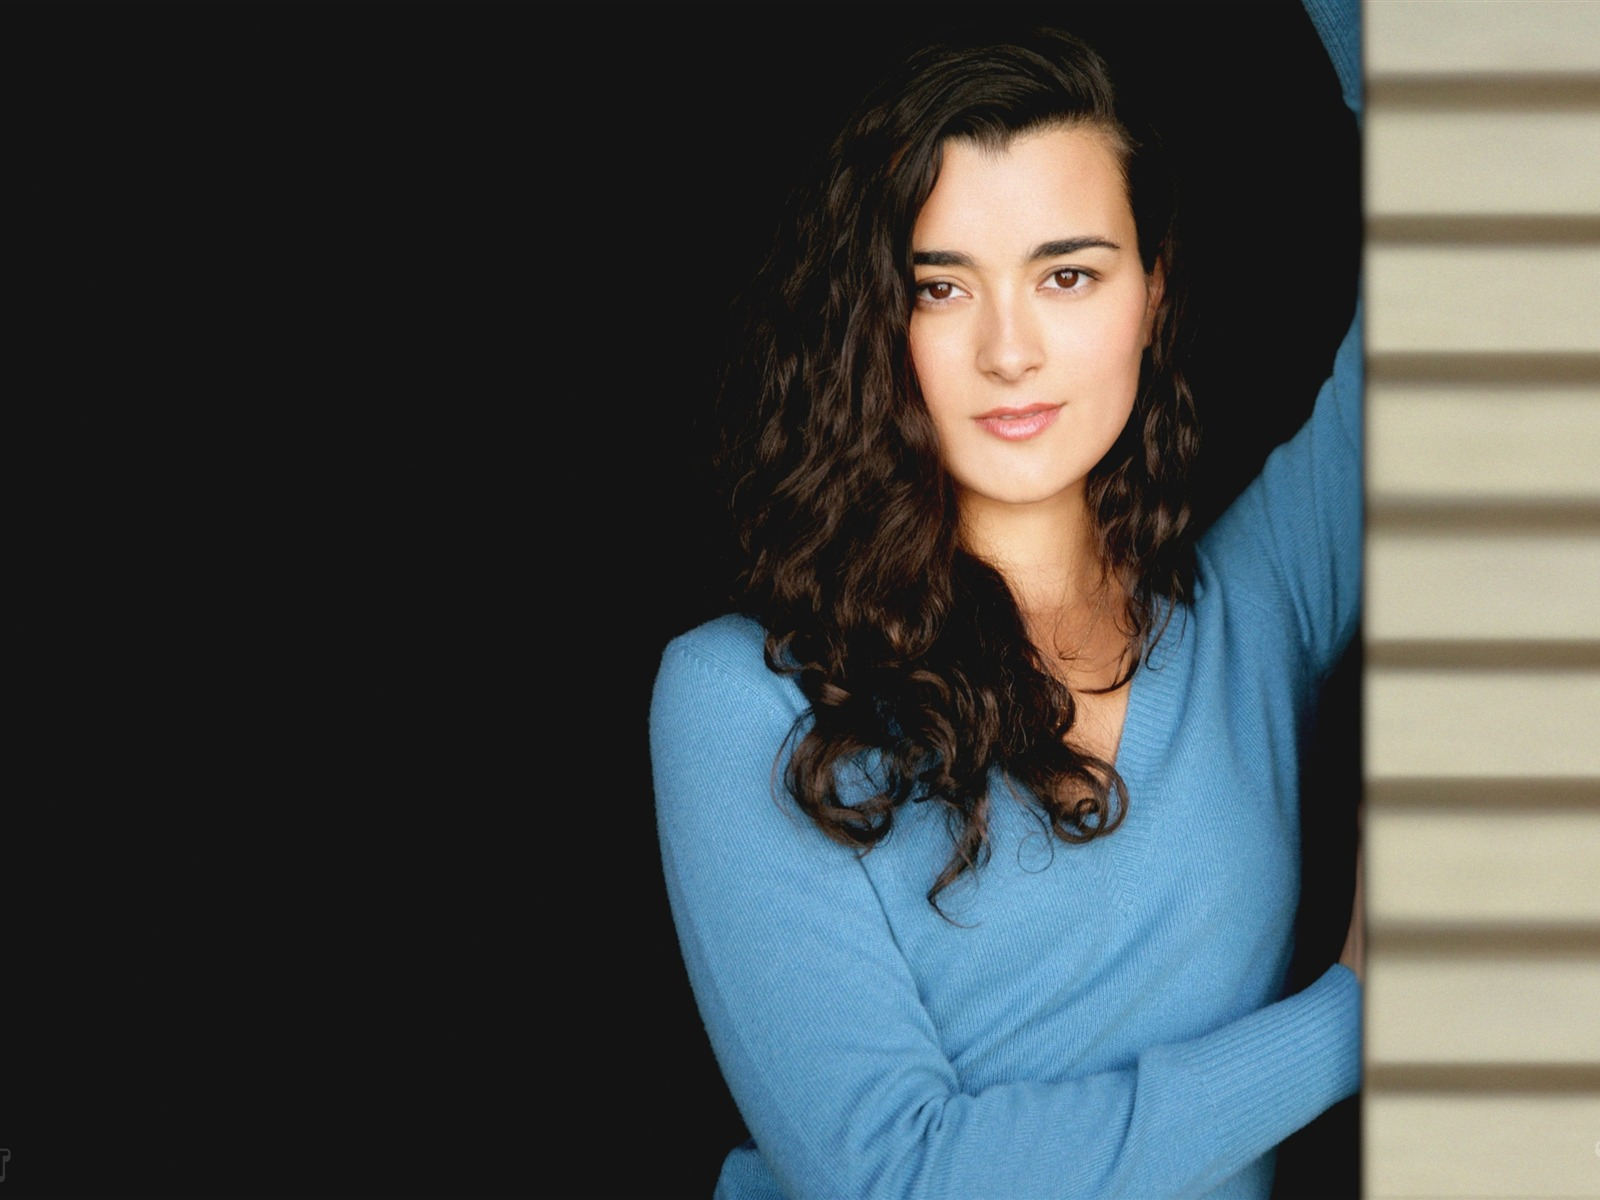 Cote de Pablo #014 - 1600x1200 Wallpapers Pictures Photos Images